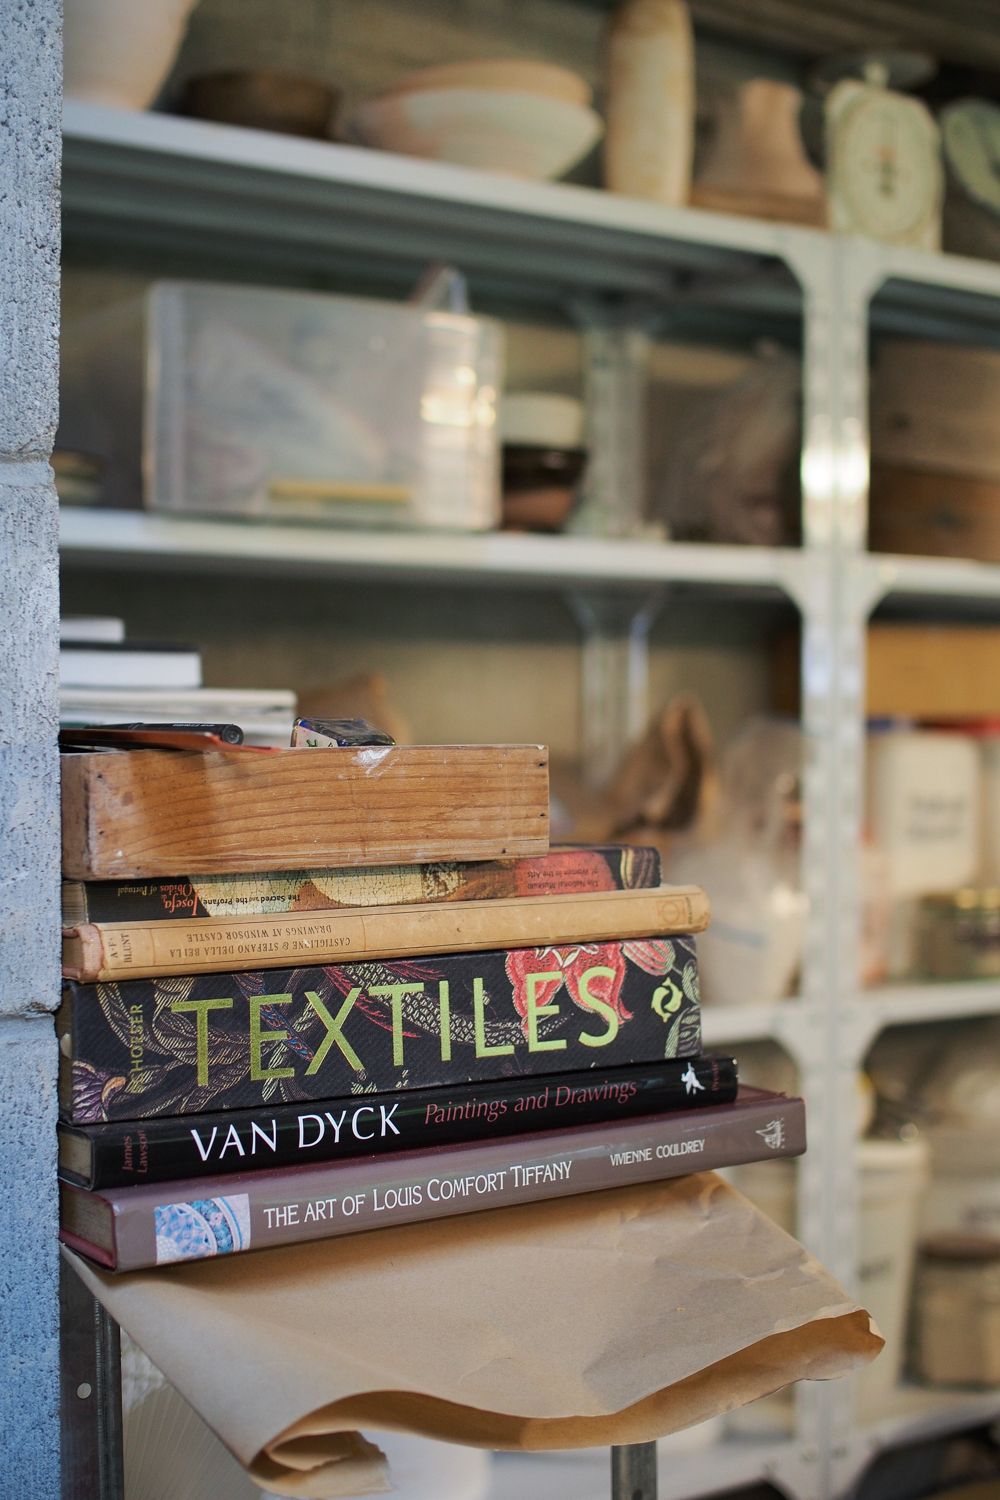 Ace Firers are NZ Potters, we visit there studio to see their ceramics that they make for Kaolin Store